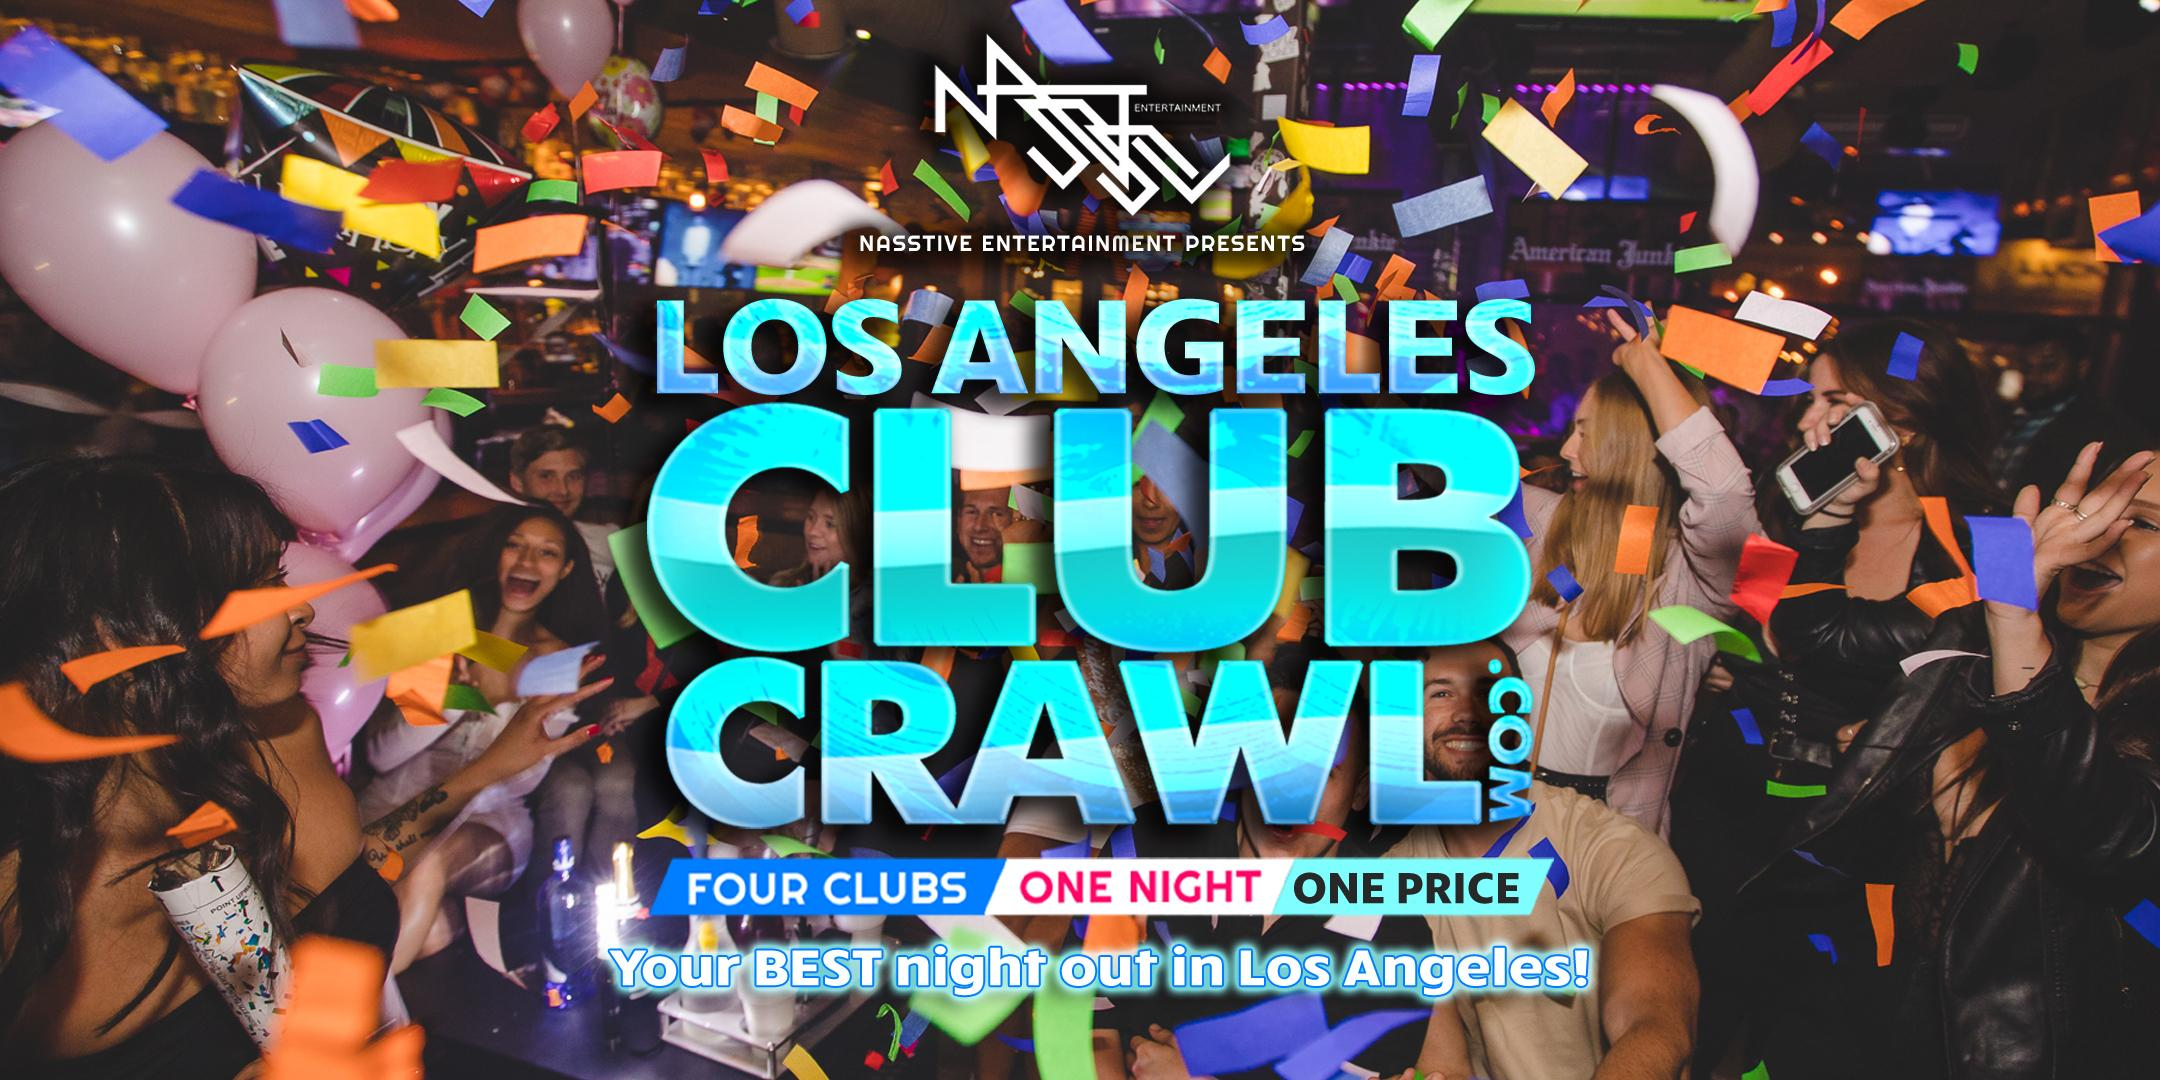 Los Angeles Club Crawl